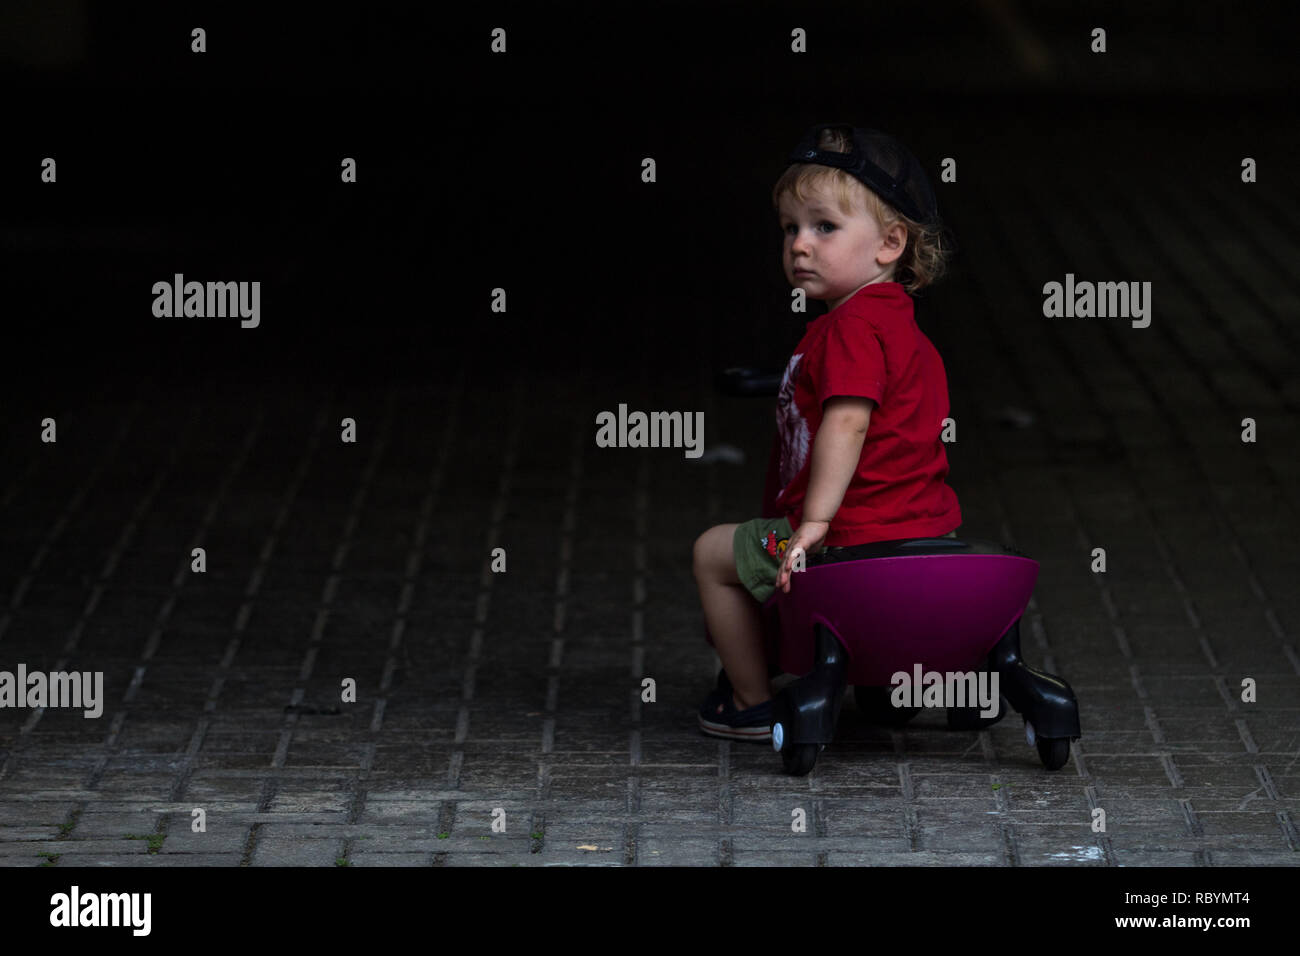 A photo of a kid in a red shirt driving sitting on a purple plasma car like ride on toy looking into darkness - Stock Image